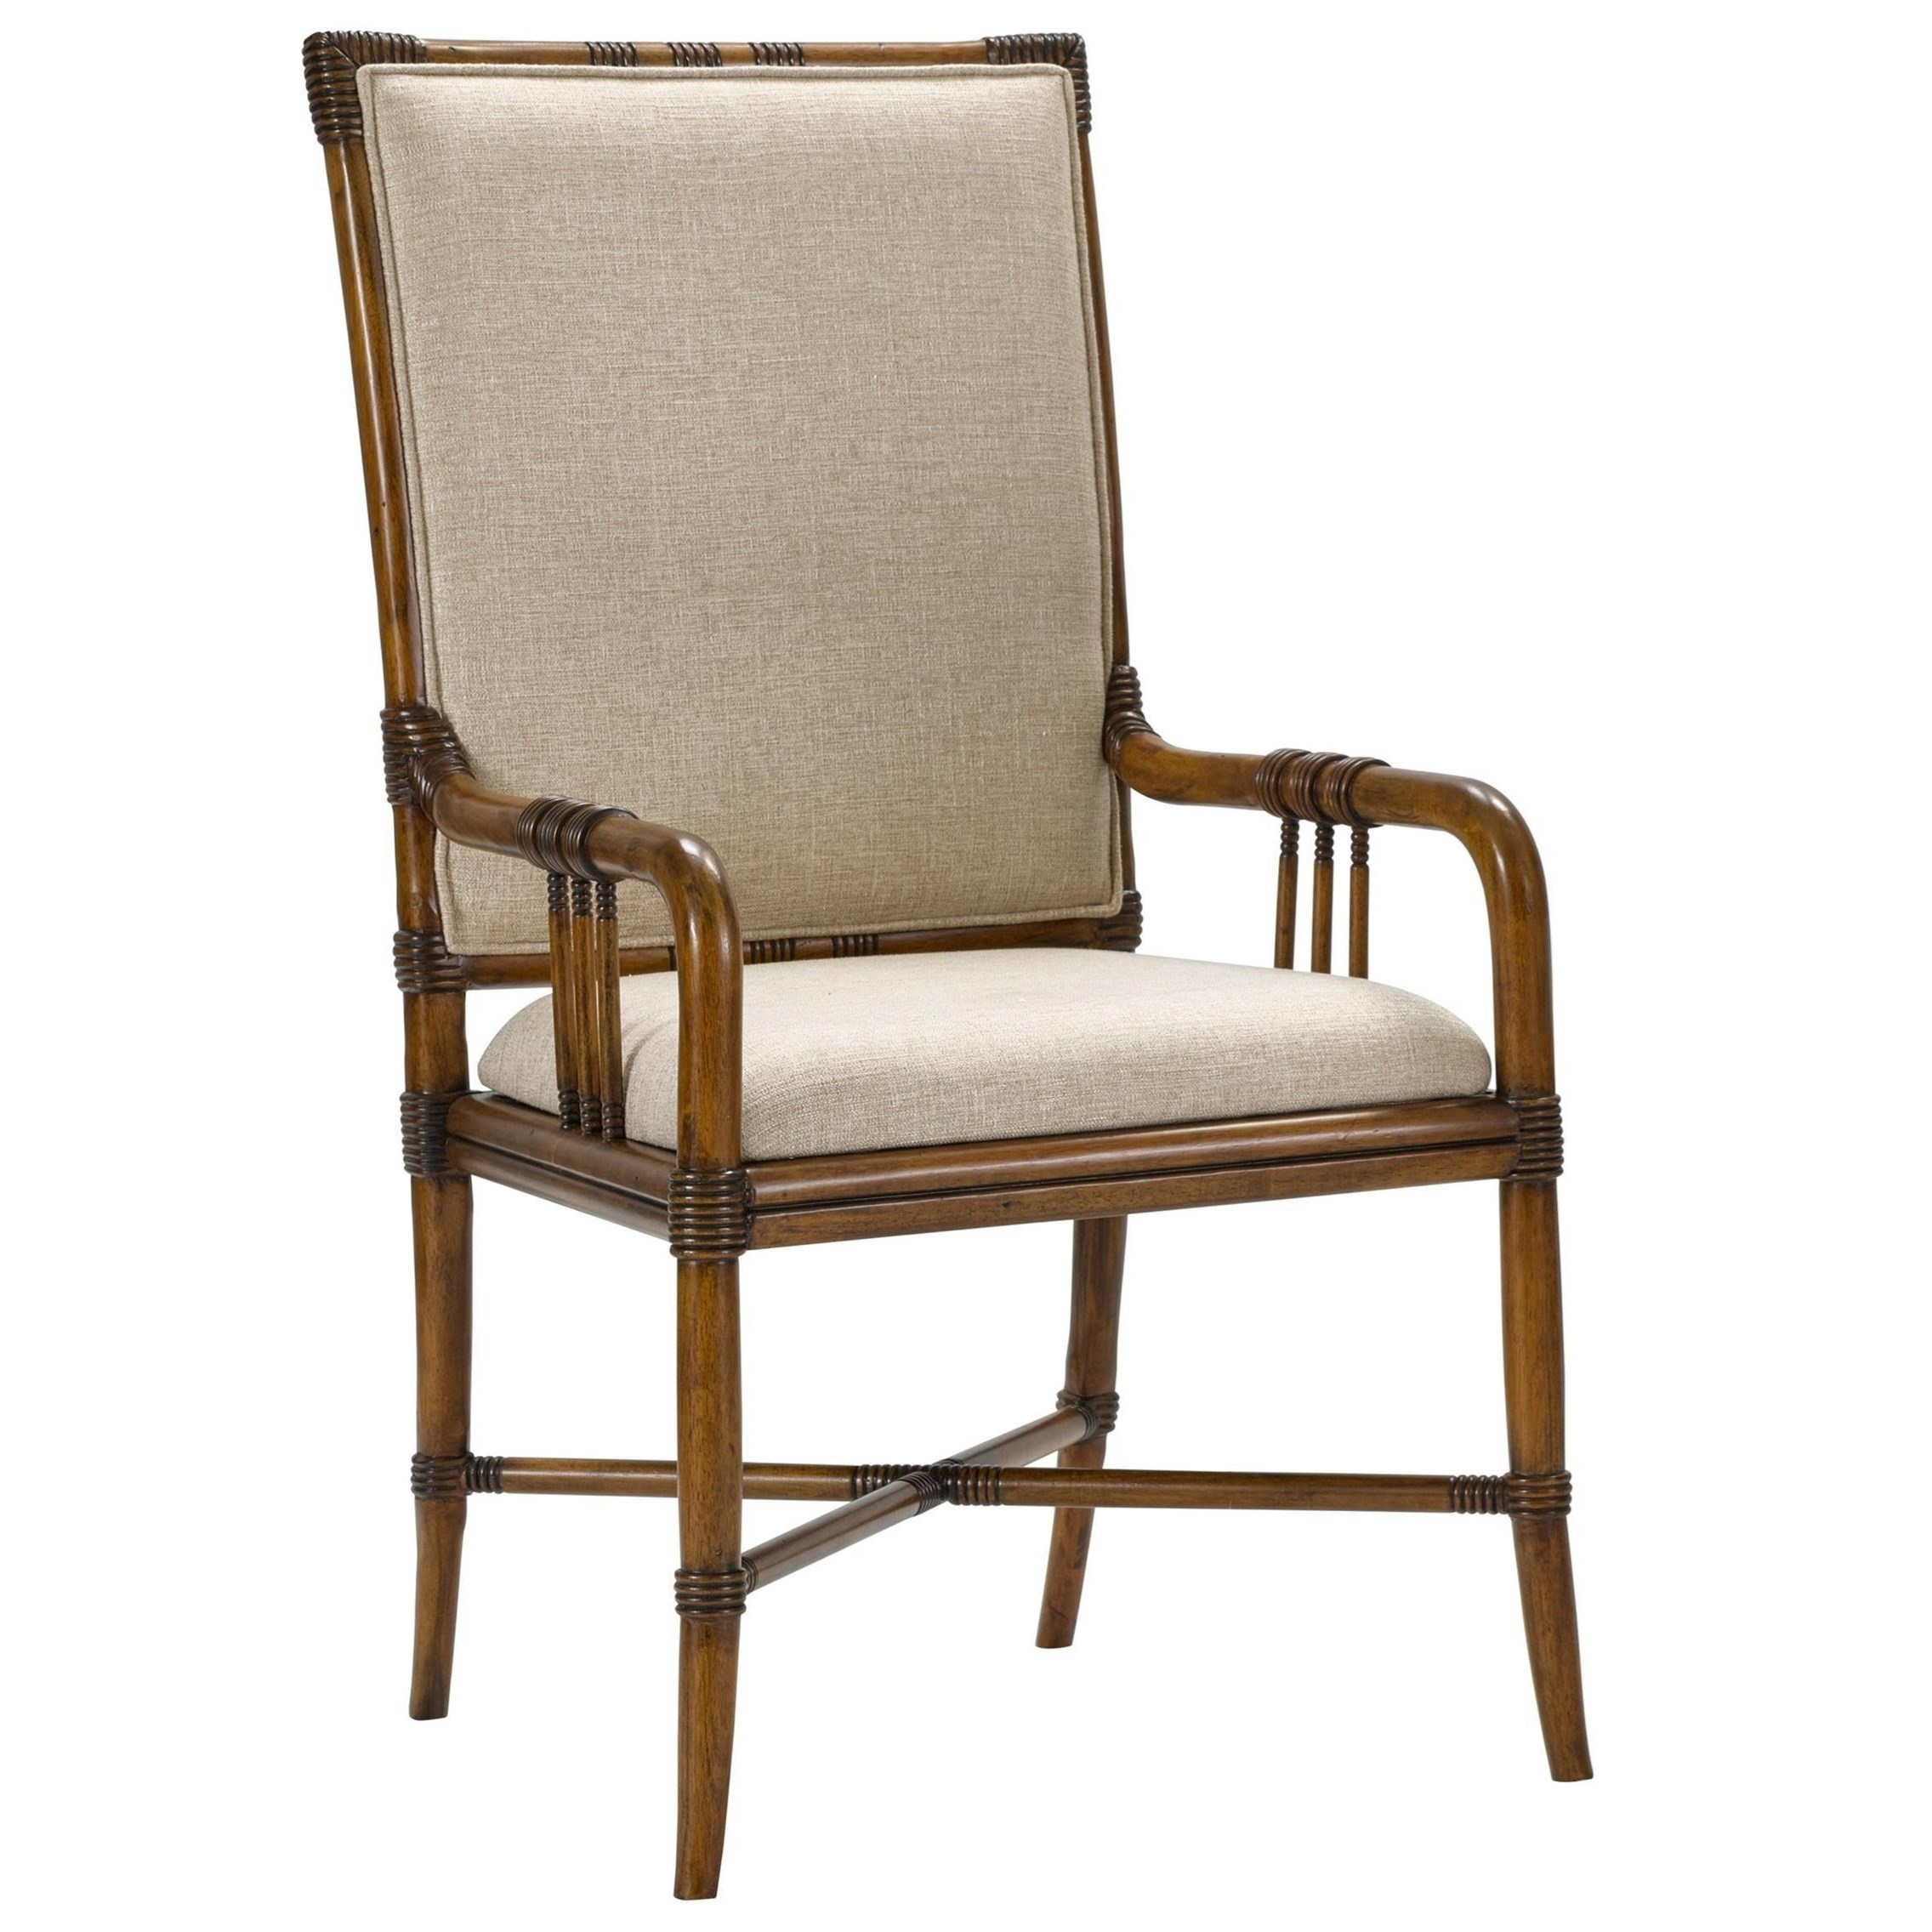 Broyhill Furniture Amalie Bay Bamboo Arm Chair With Upholstered Seat And  Back